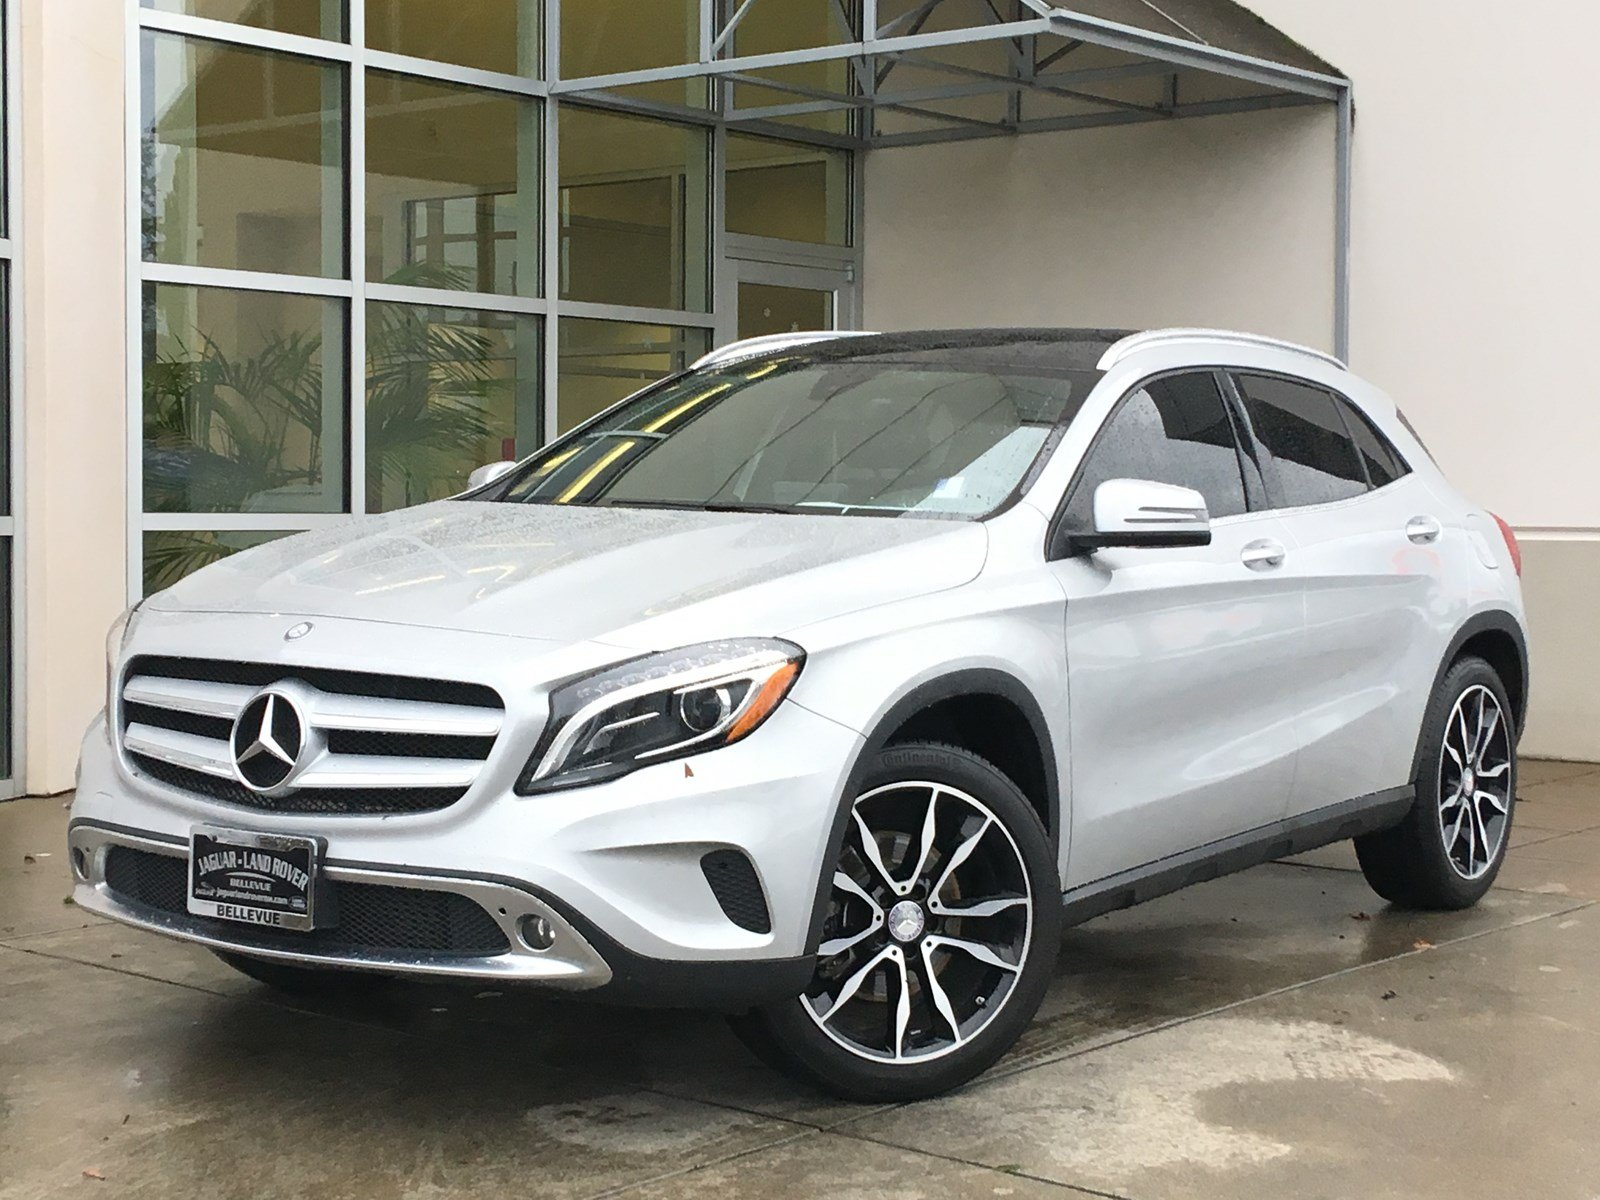 Land Rover Bellevue >> Pre-Owned 2016 Mercedes-Benz GLA GLA 250 Sport Utility in Bellevue #74368C | Land Rover Bellevue